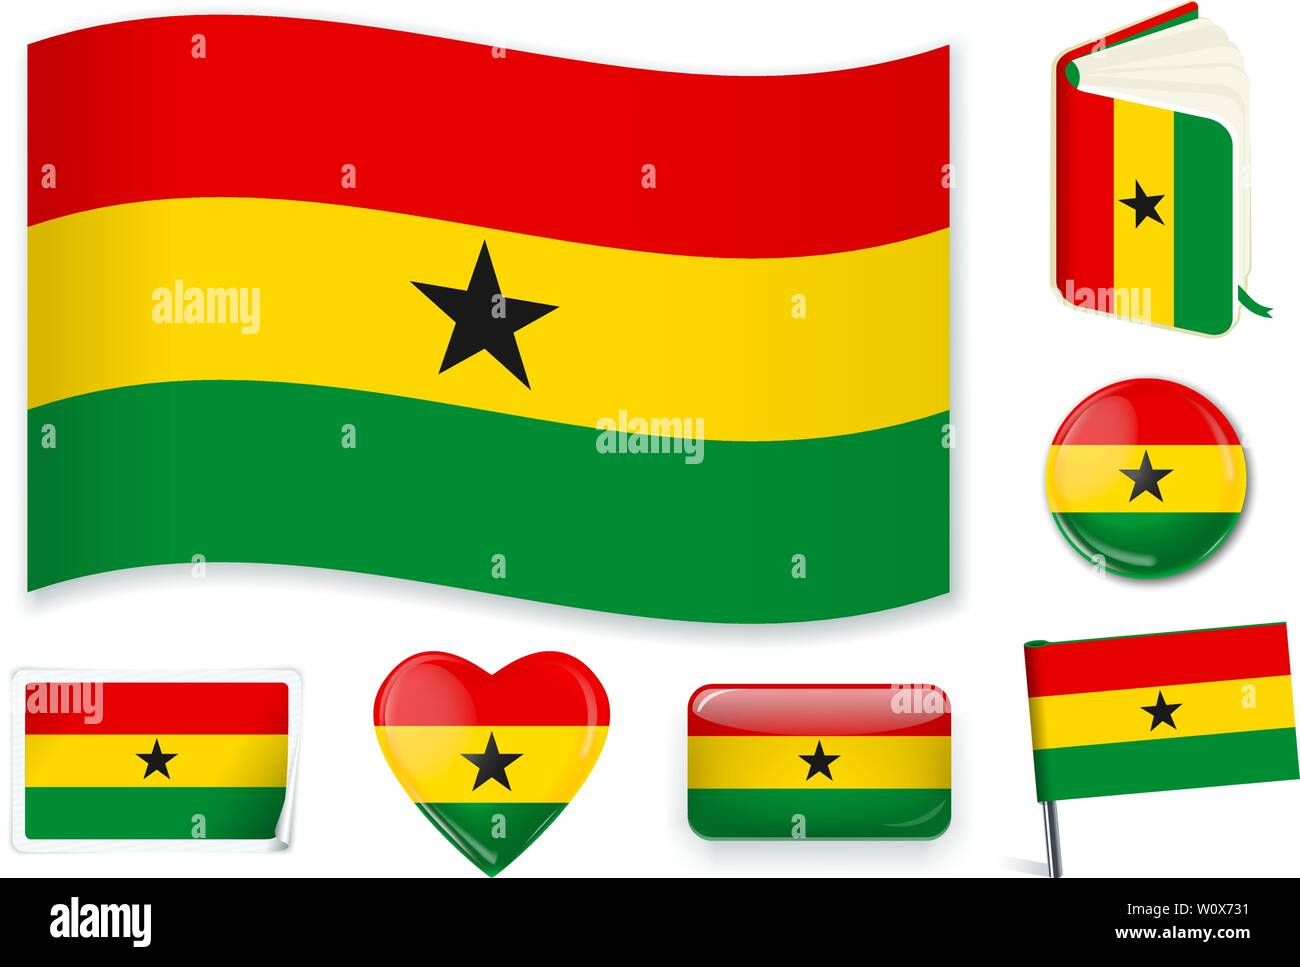 Ghana national flag. Vector illustration. 3 layers. Shadows, flat flag, lights and shadows. Collection of 220 world flags. Accurate colors. Easy changes. - Stock Vector